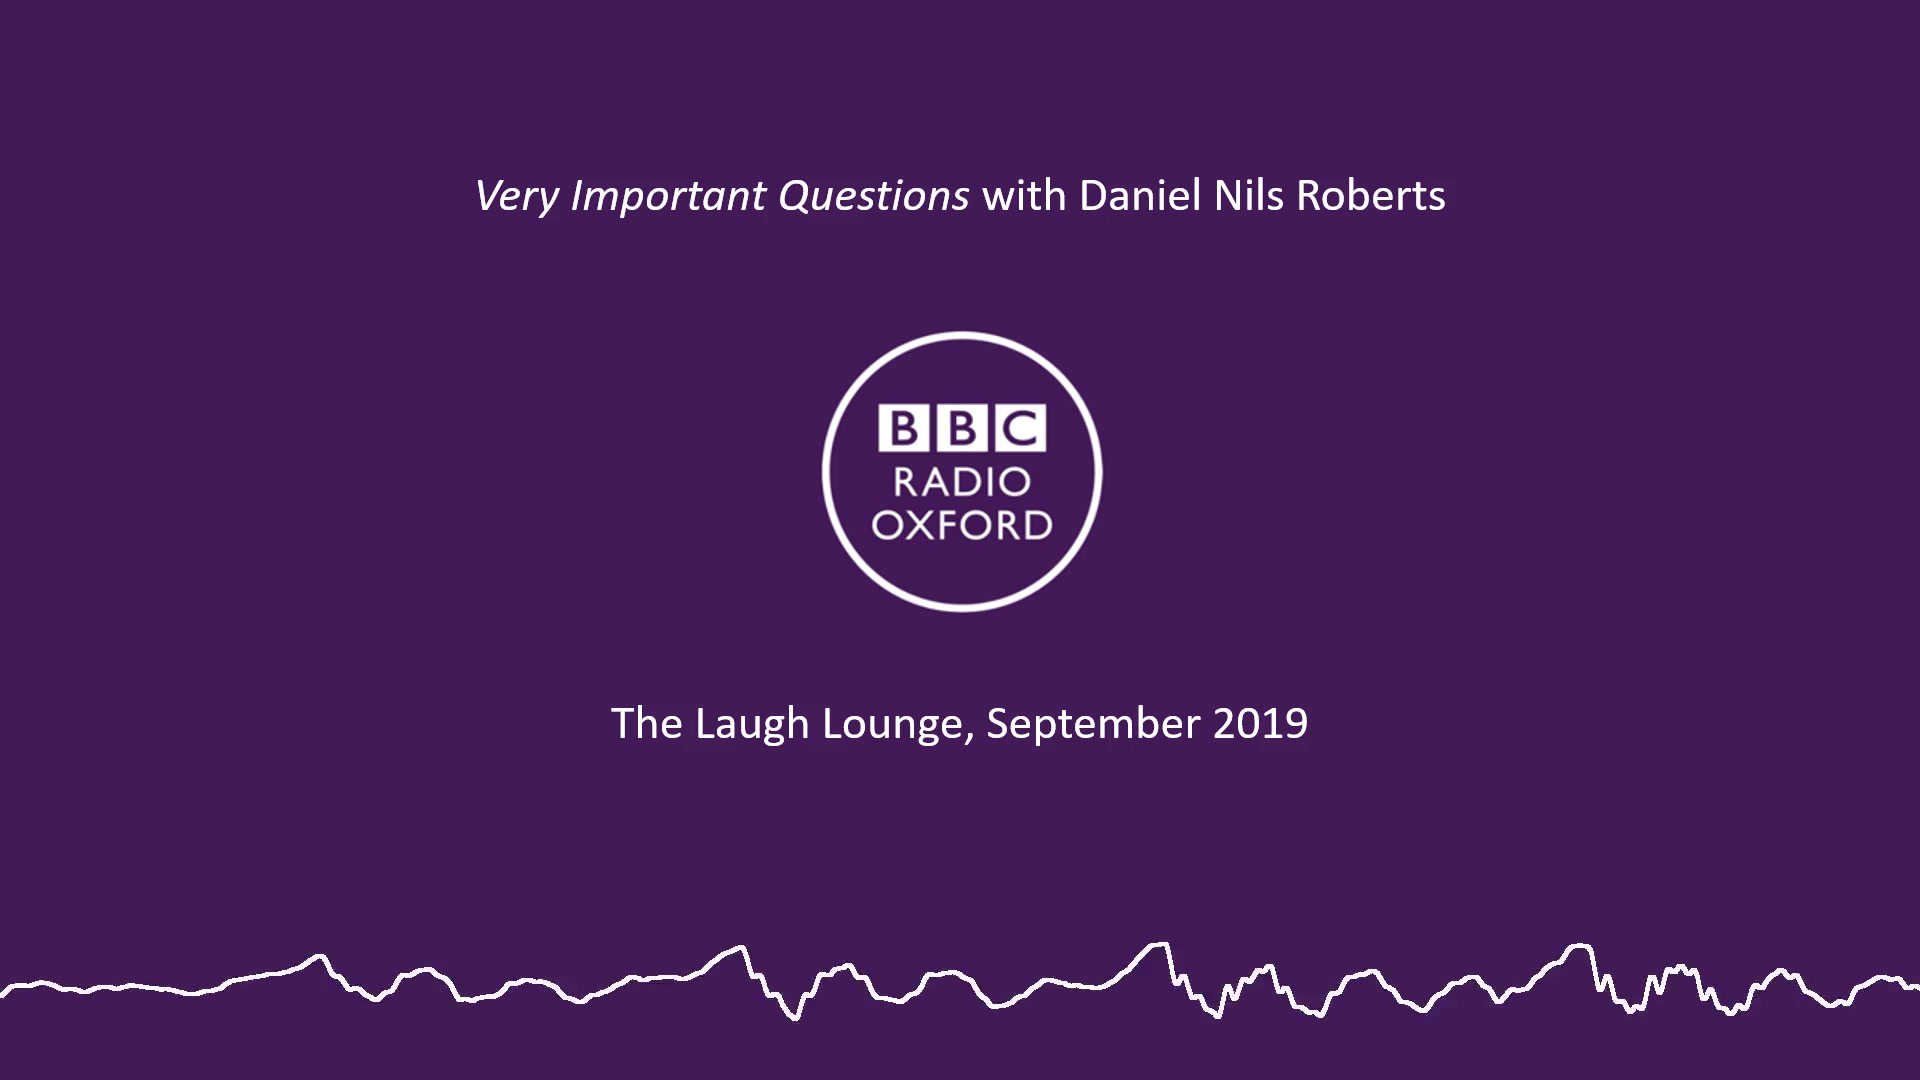 Very Important Questions with Daniel Nils Roberts